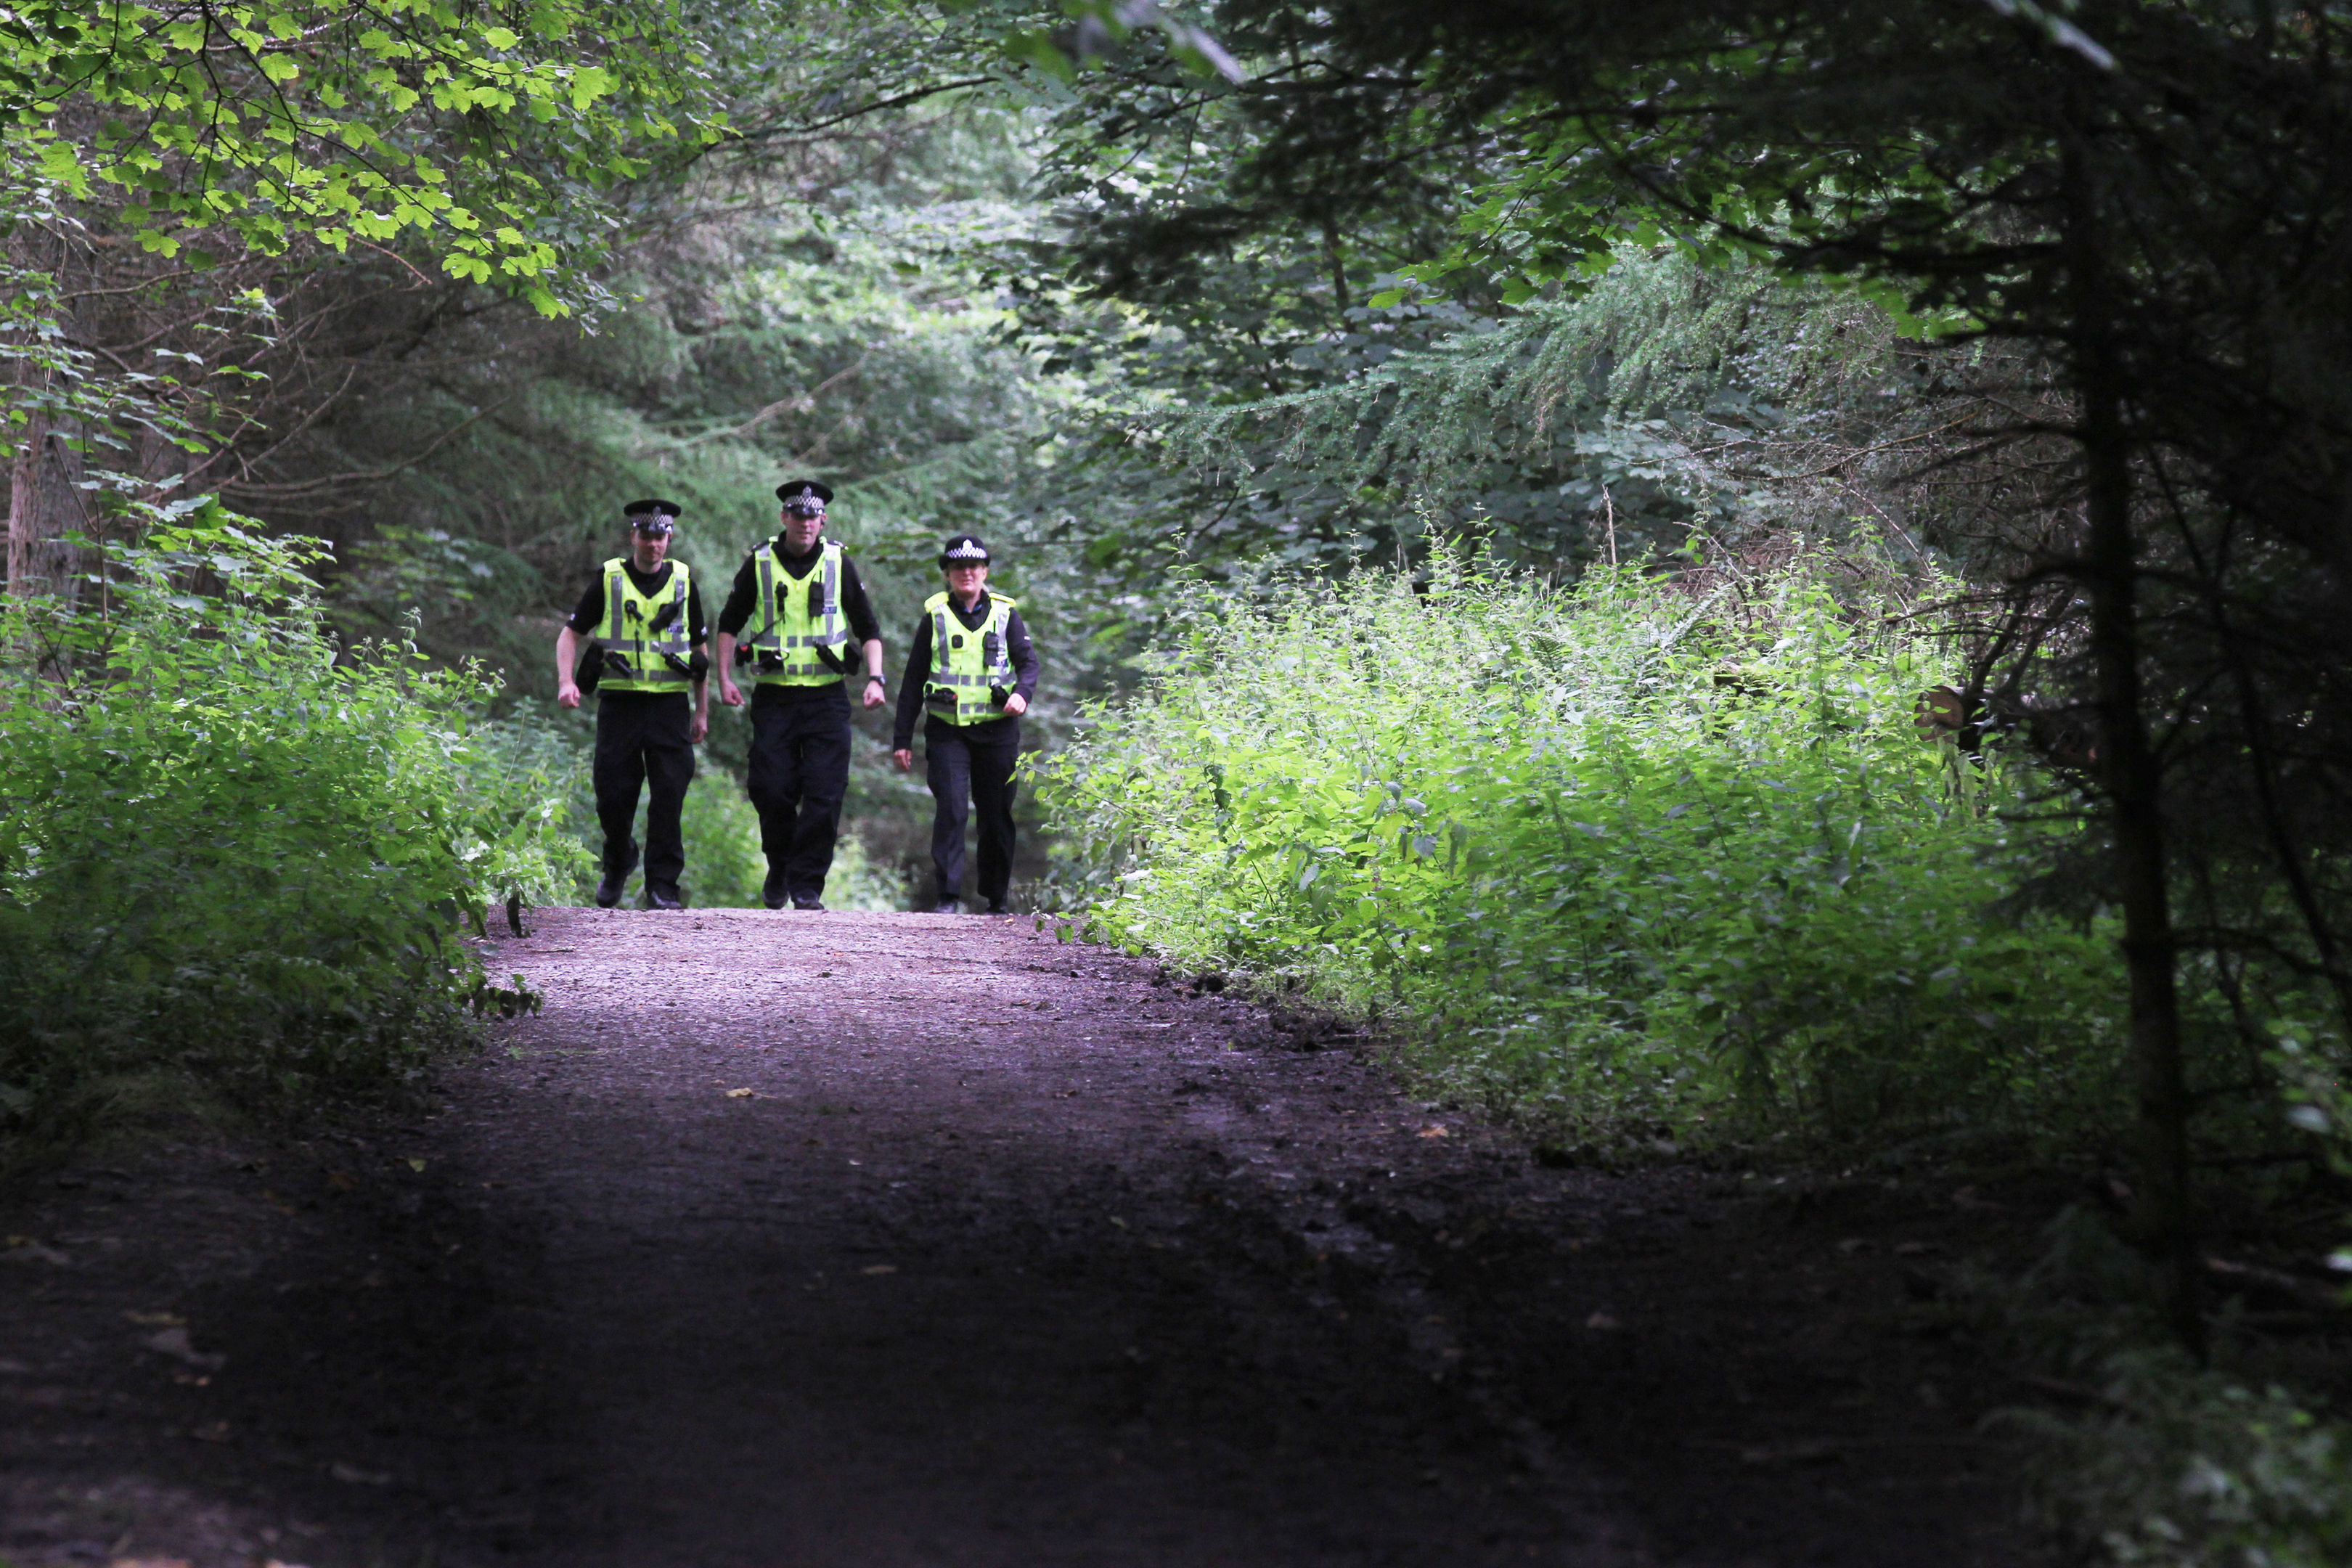 Police officers searching for evidence in Templeton Woods.